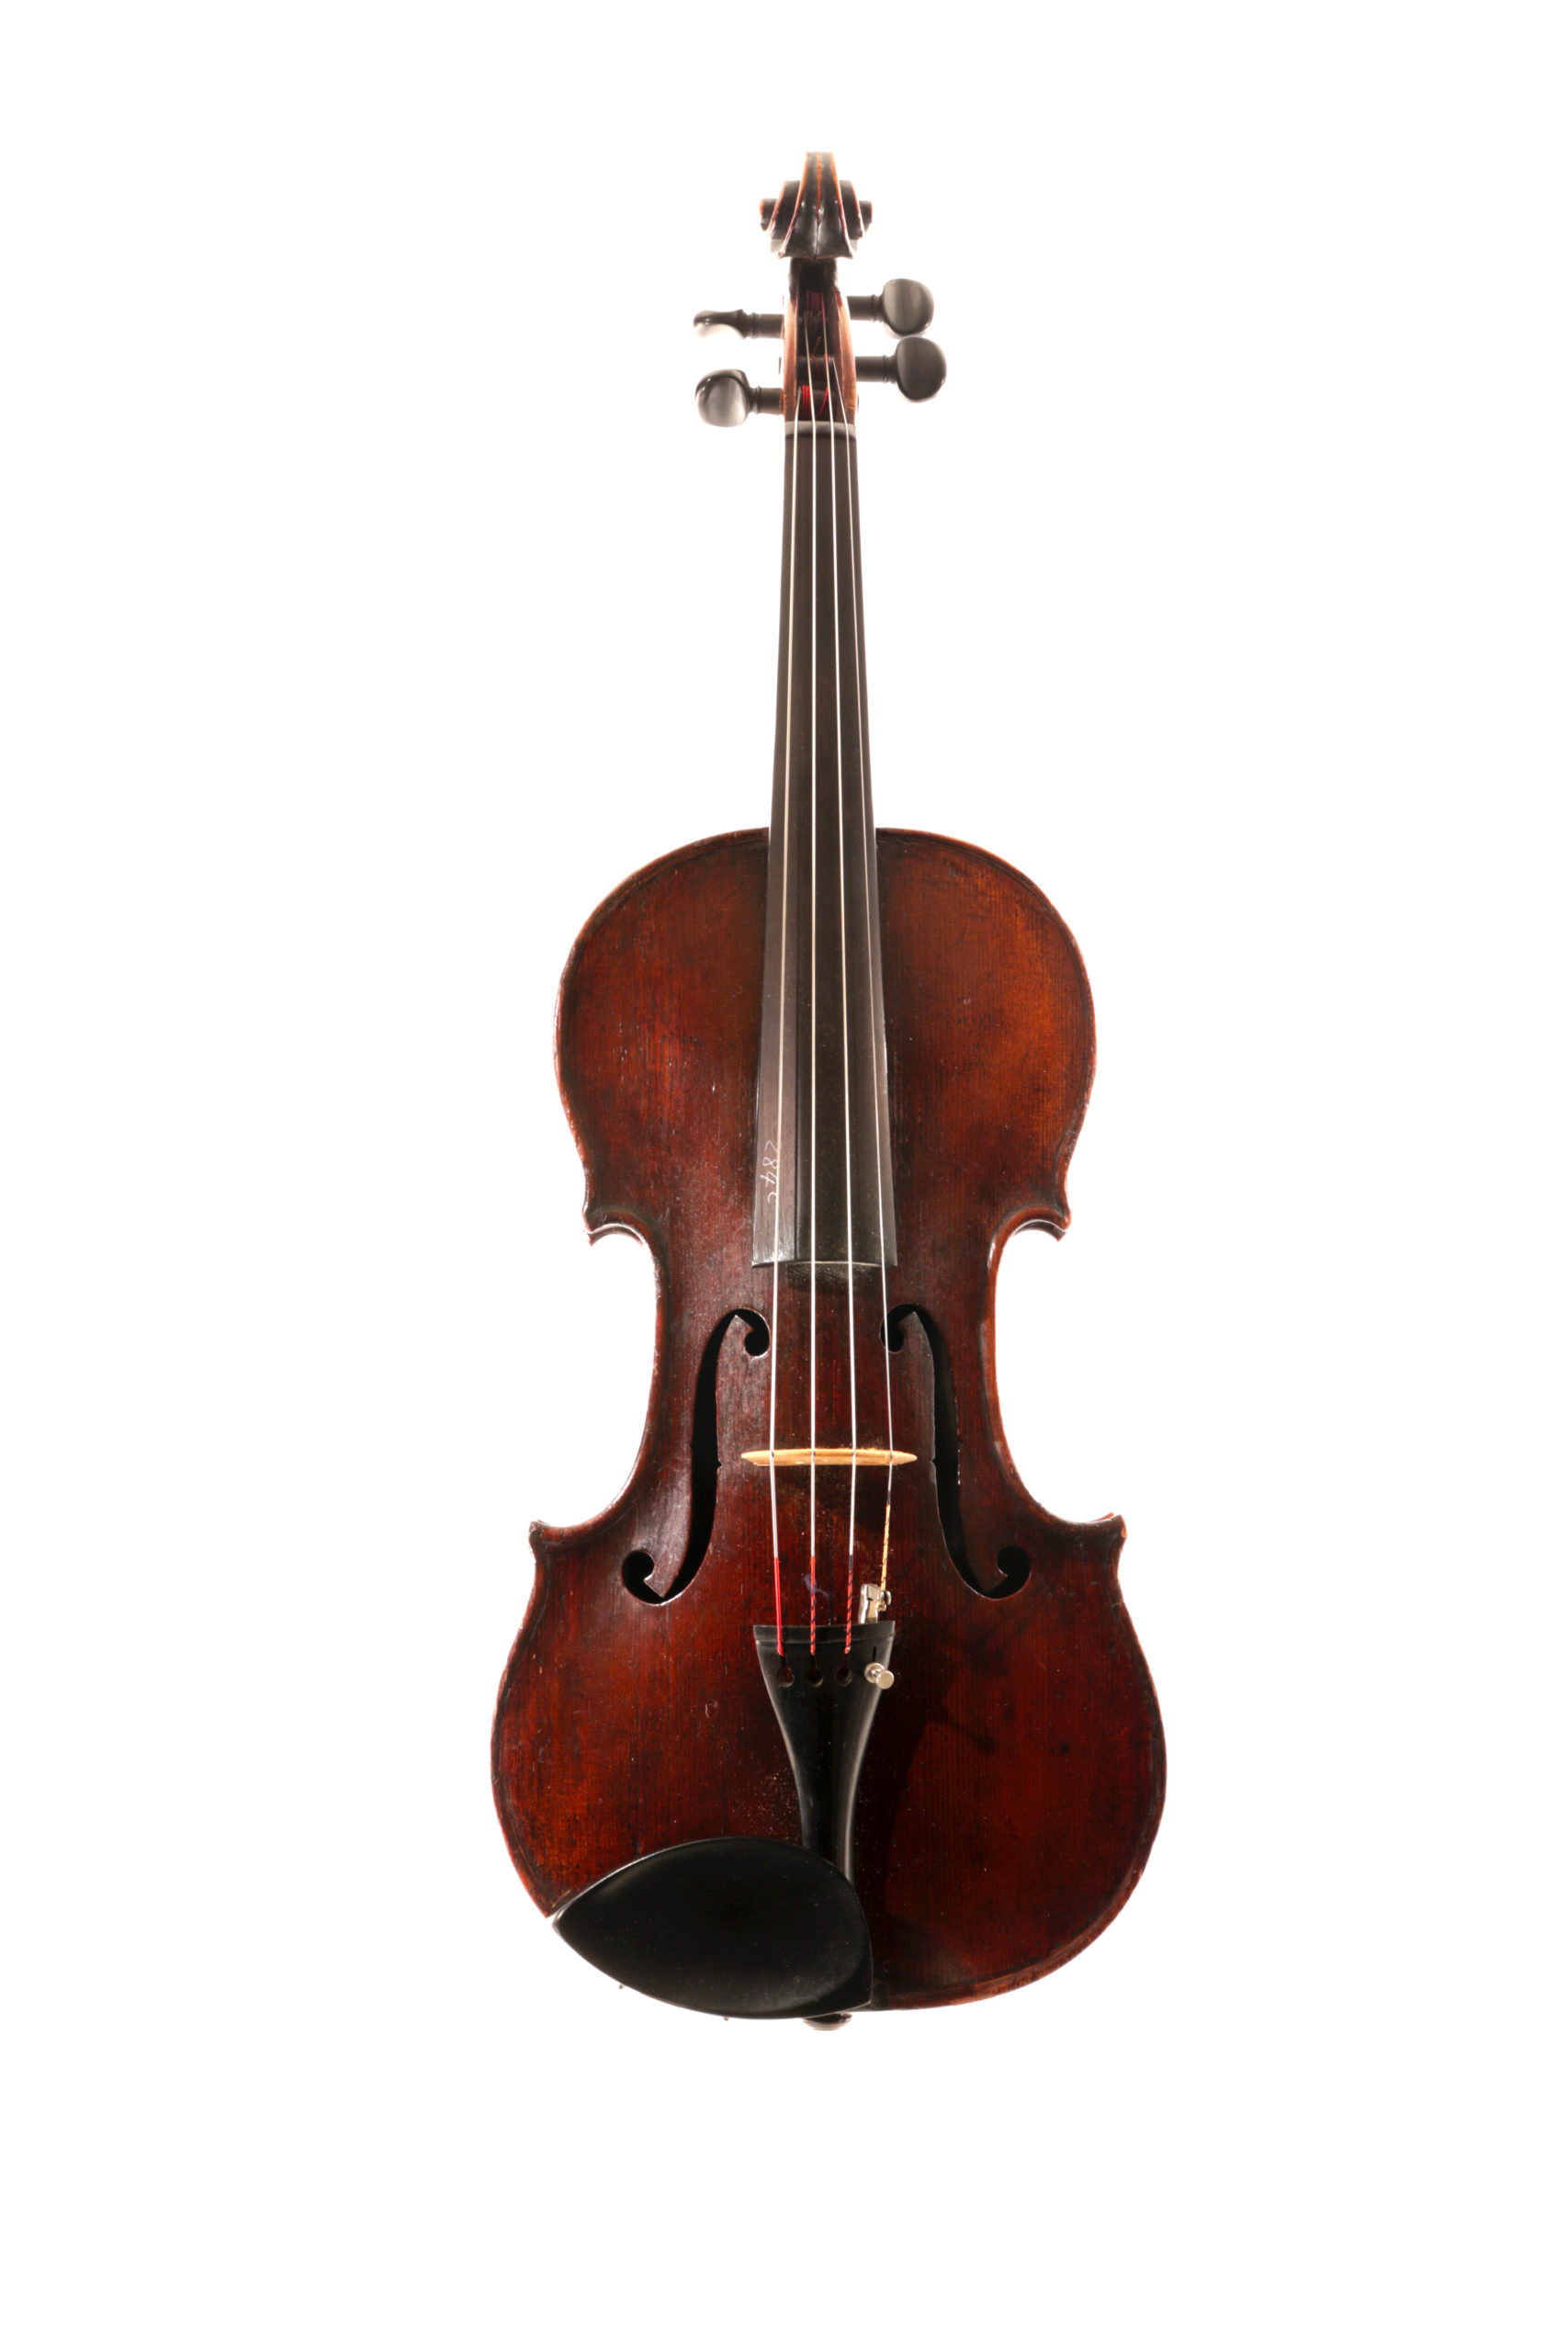 Old English viola probably by Furber London c.1860 for sale at Bridgewood and Neitzert